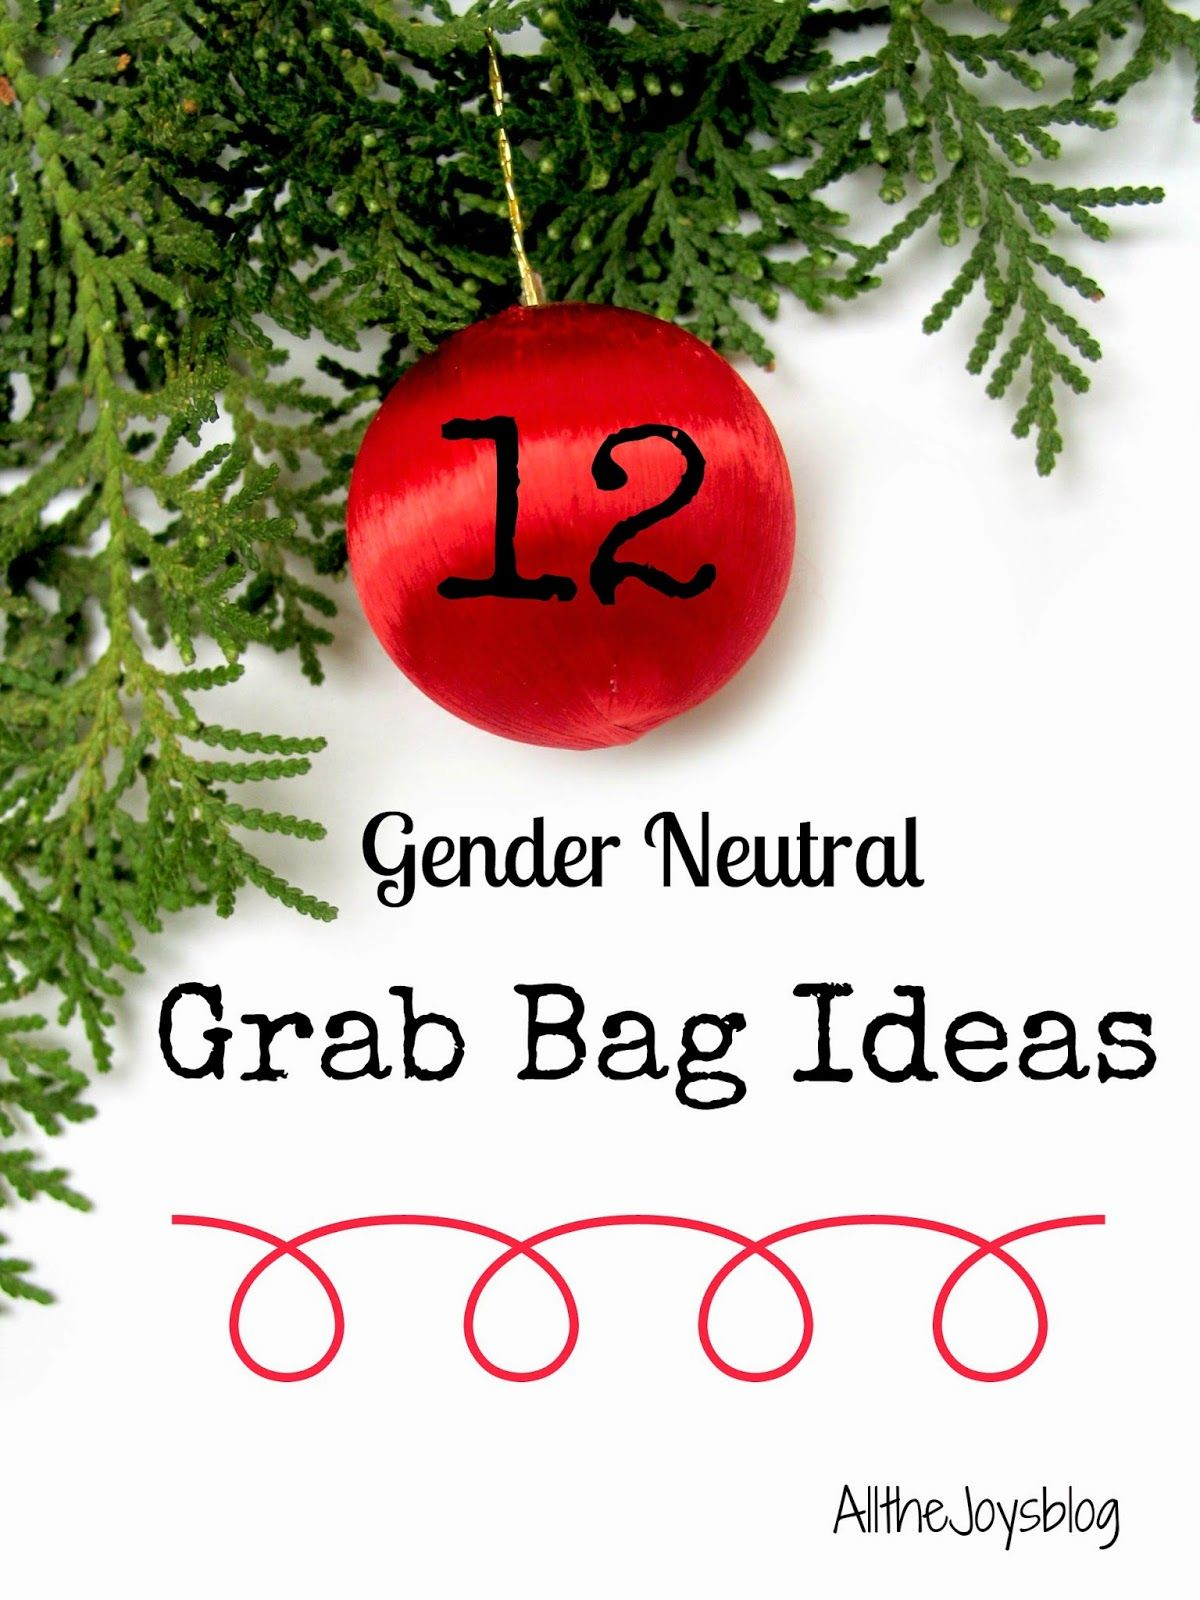 12 Gender Neutral Grab Bag Ideas Grab Bags Grab Bag Gifts